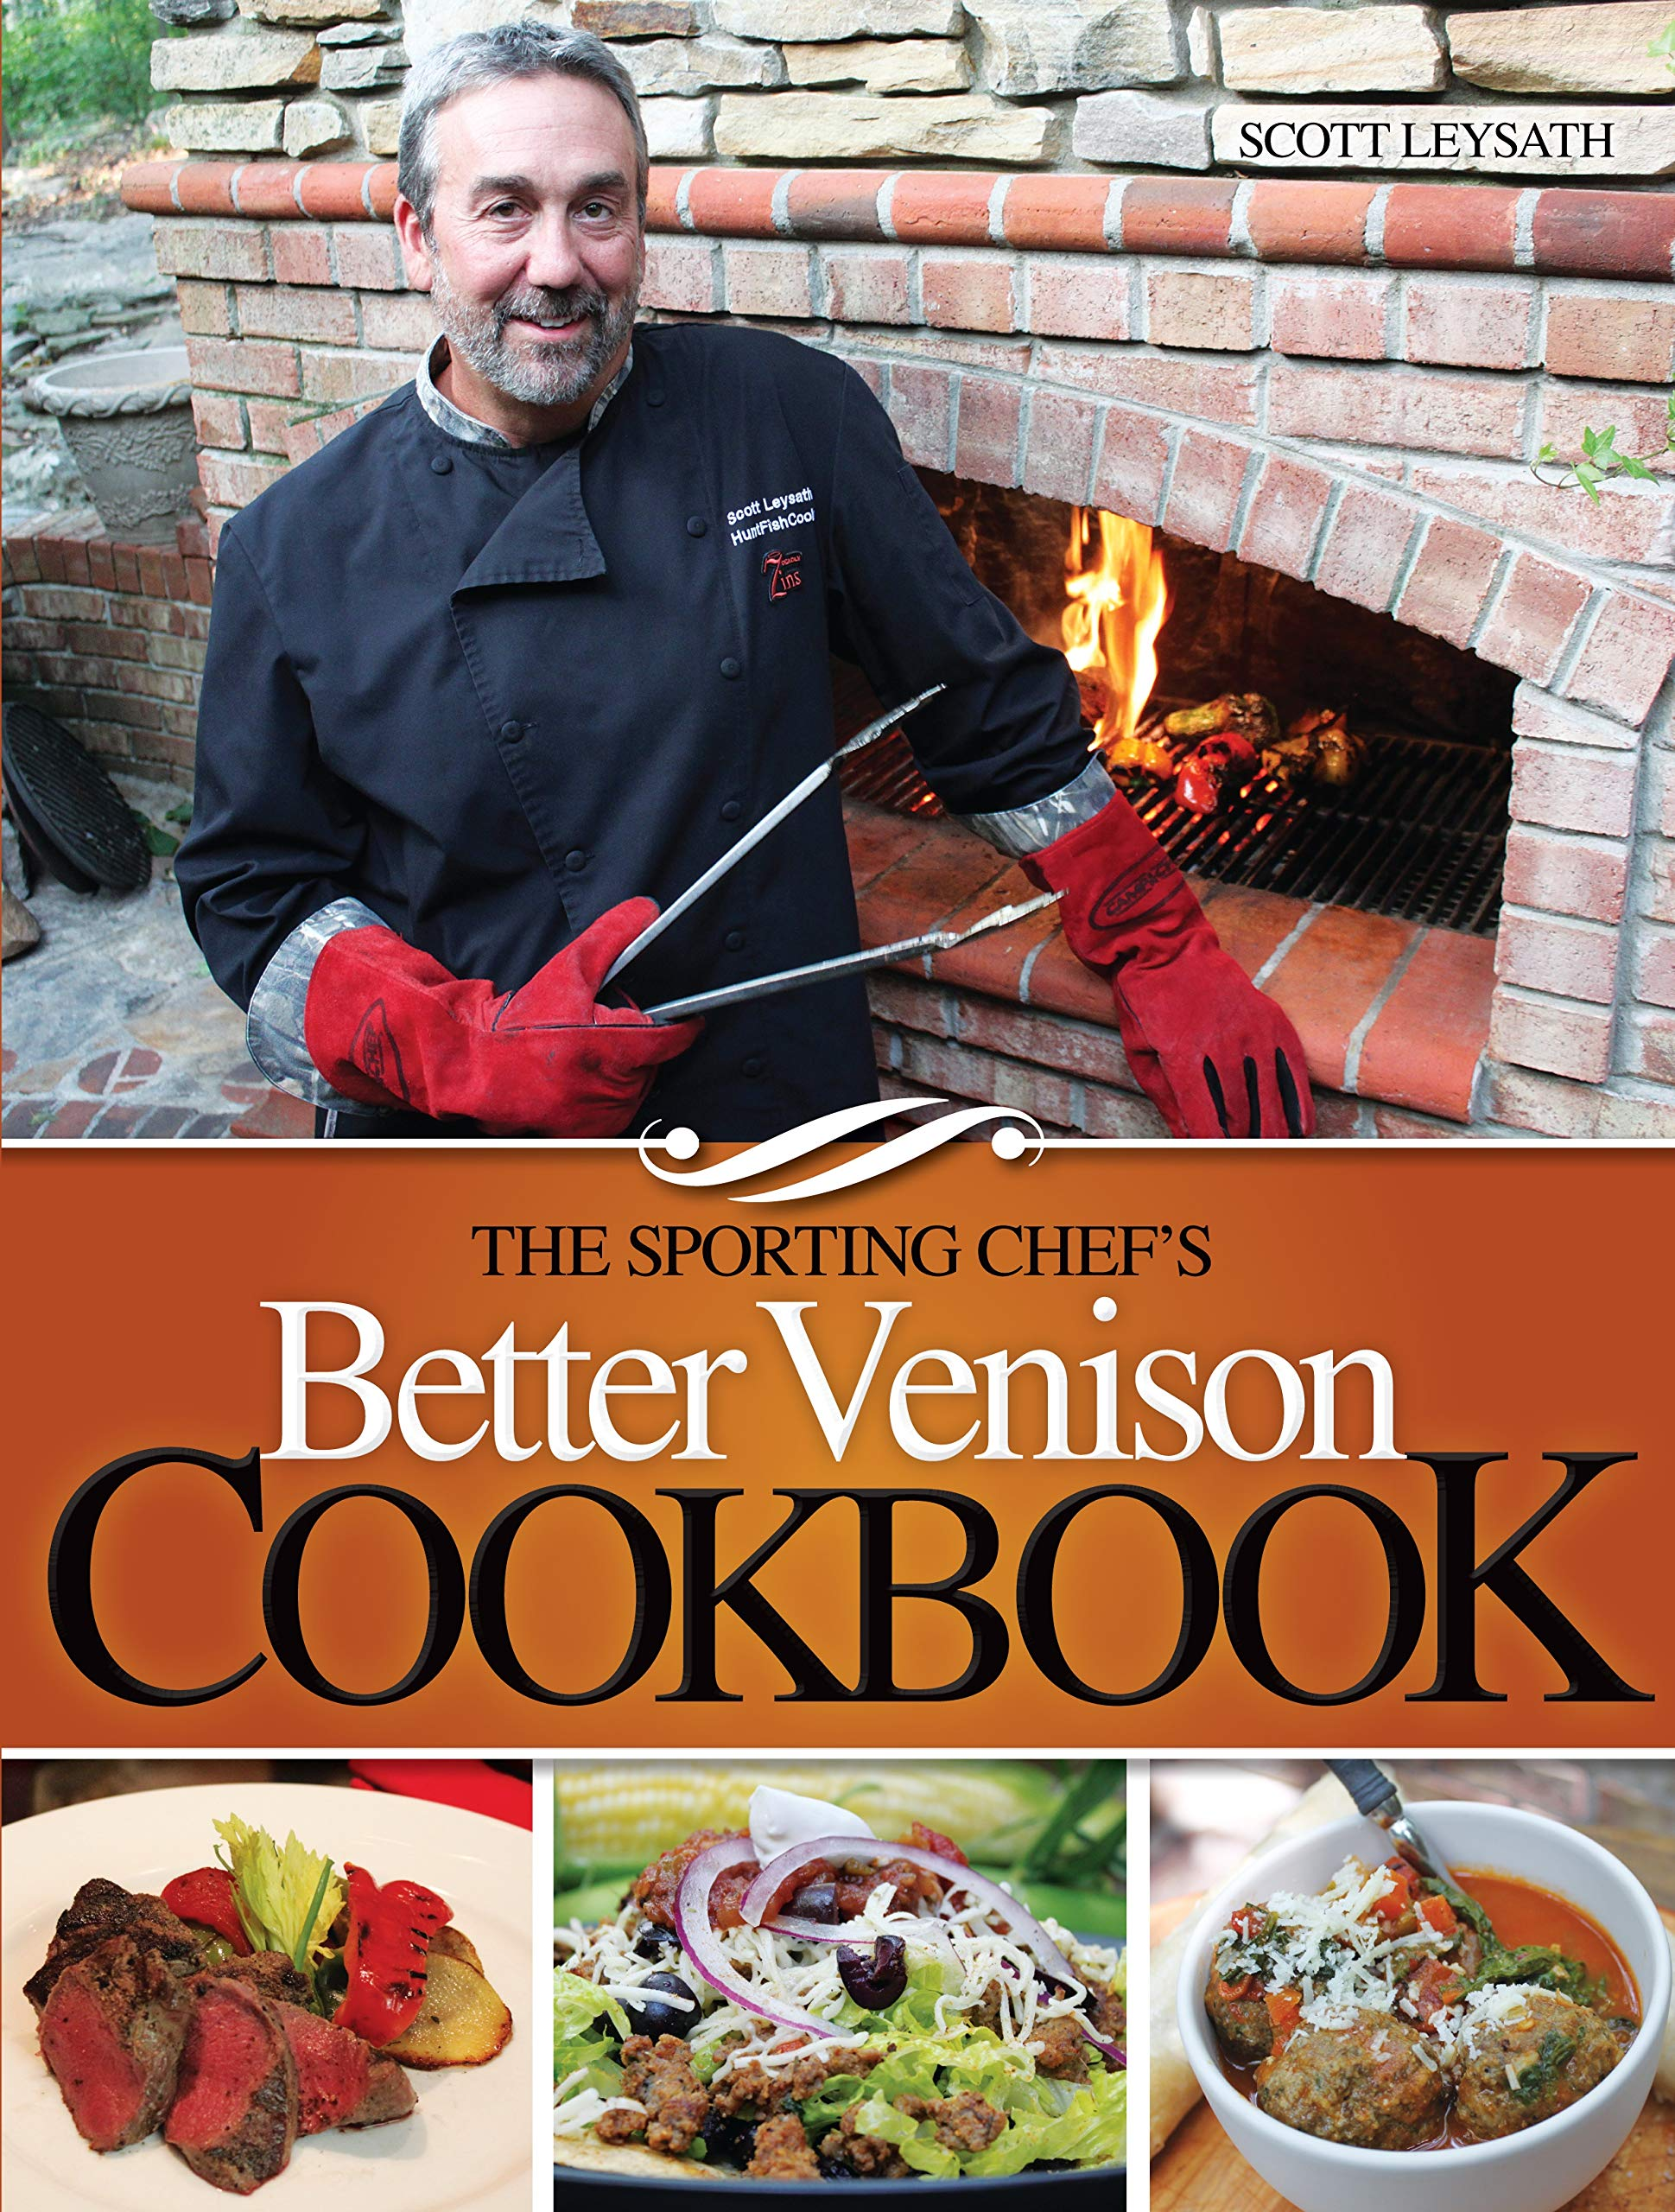 The sporting chefs better venison cookbook how to use betting trends sports